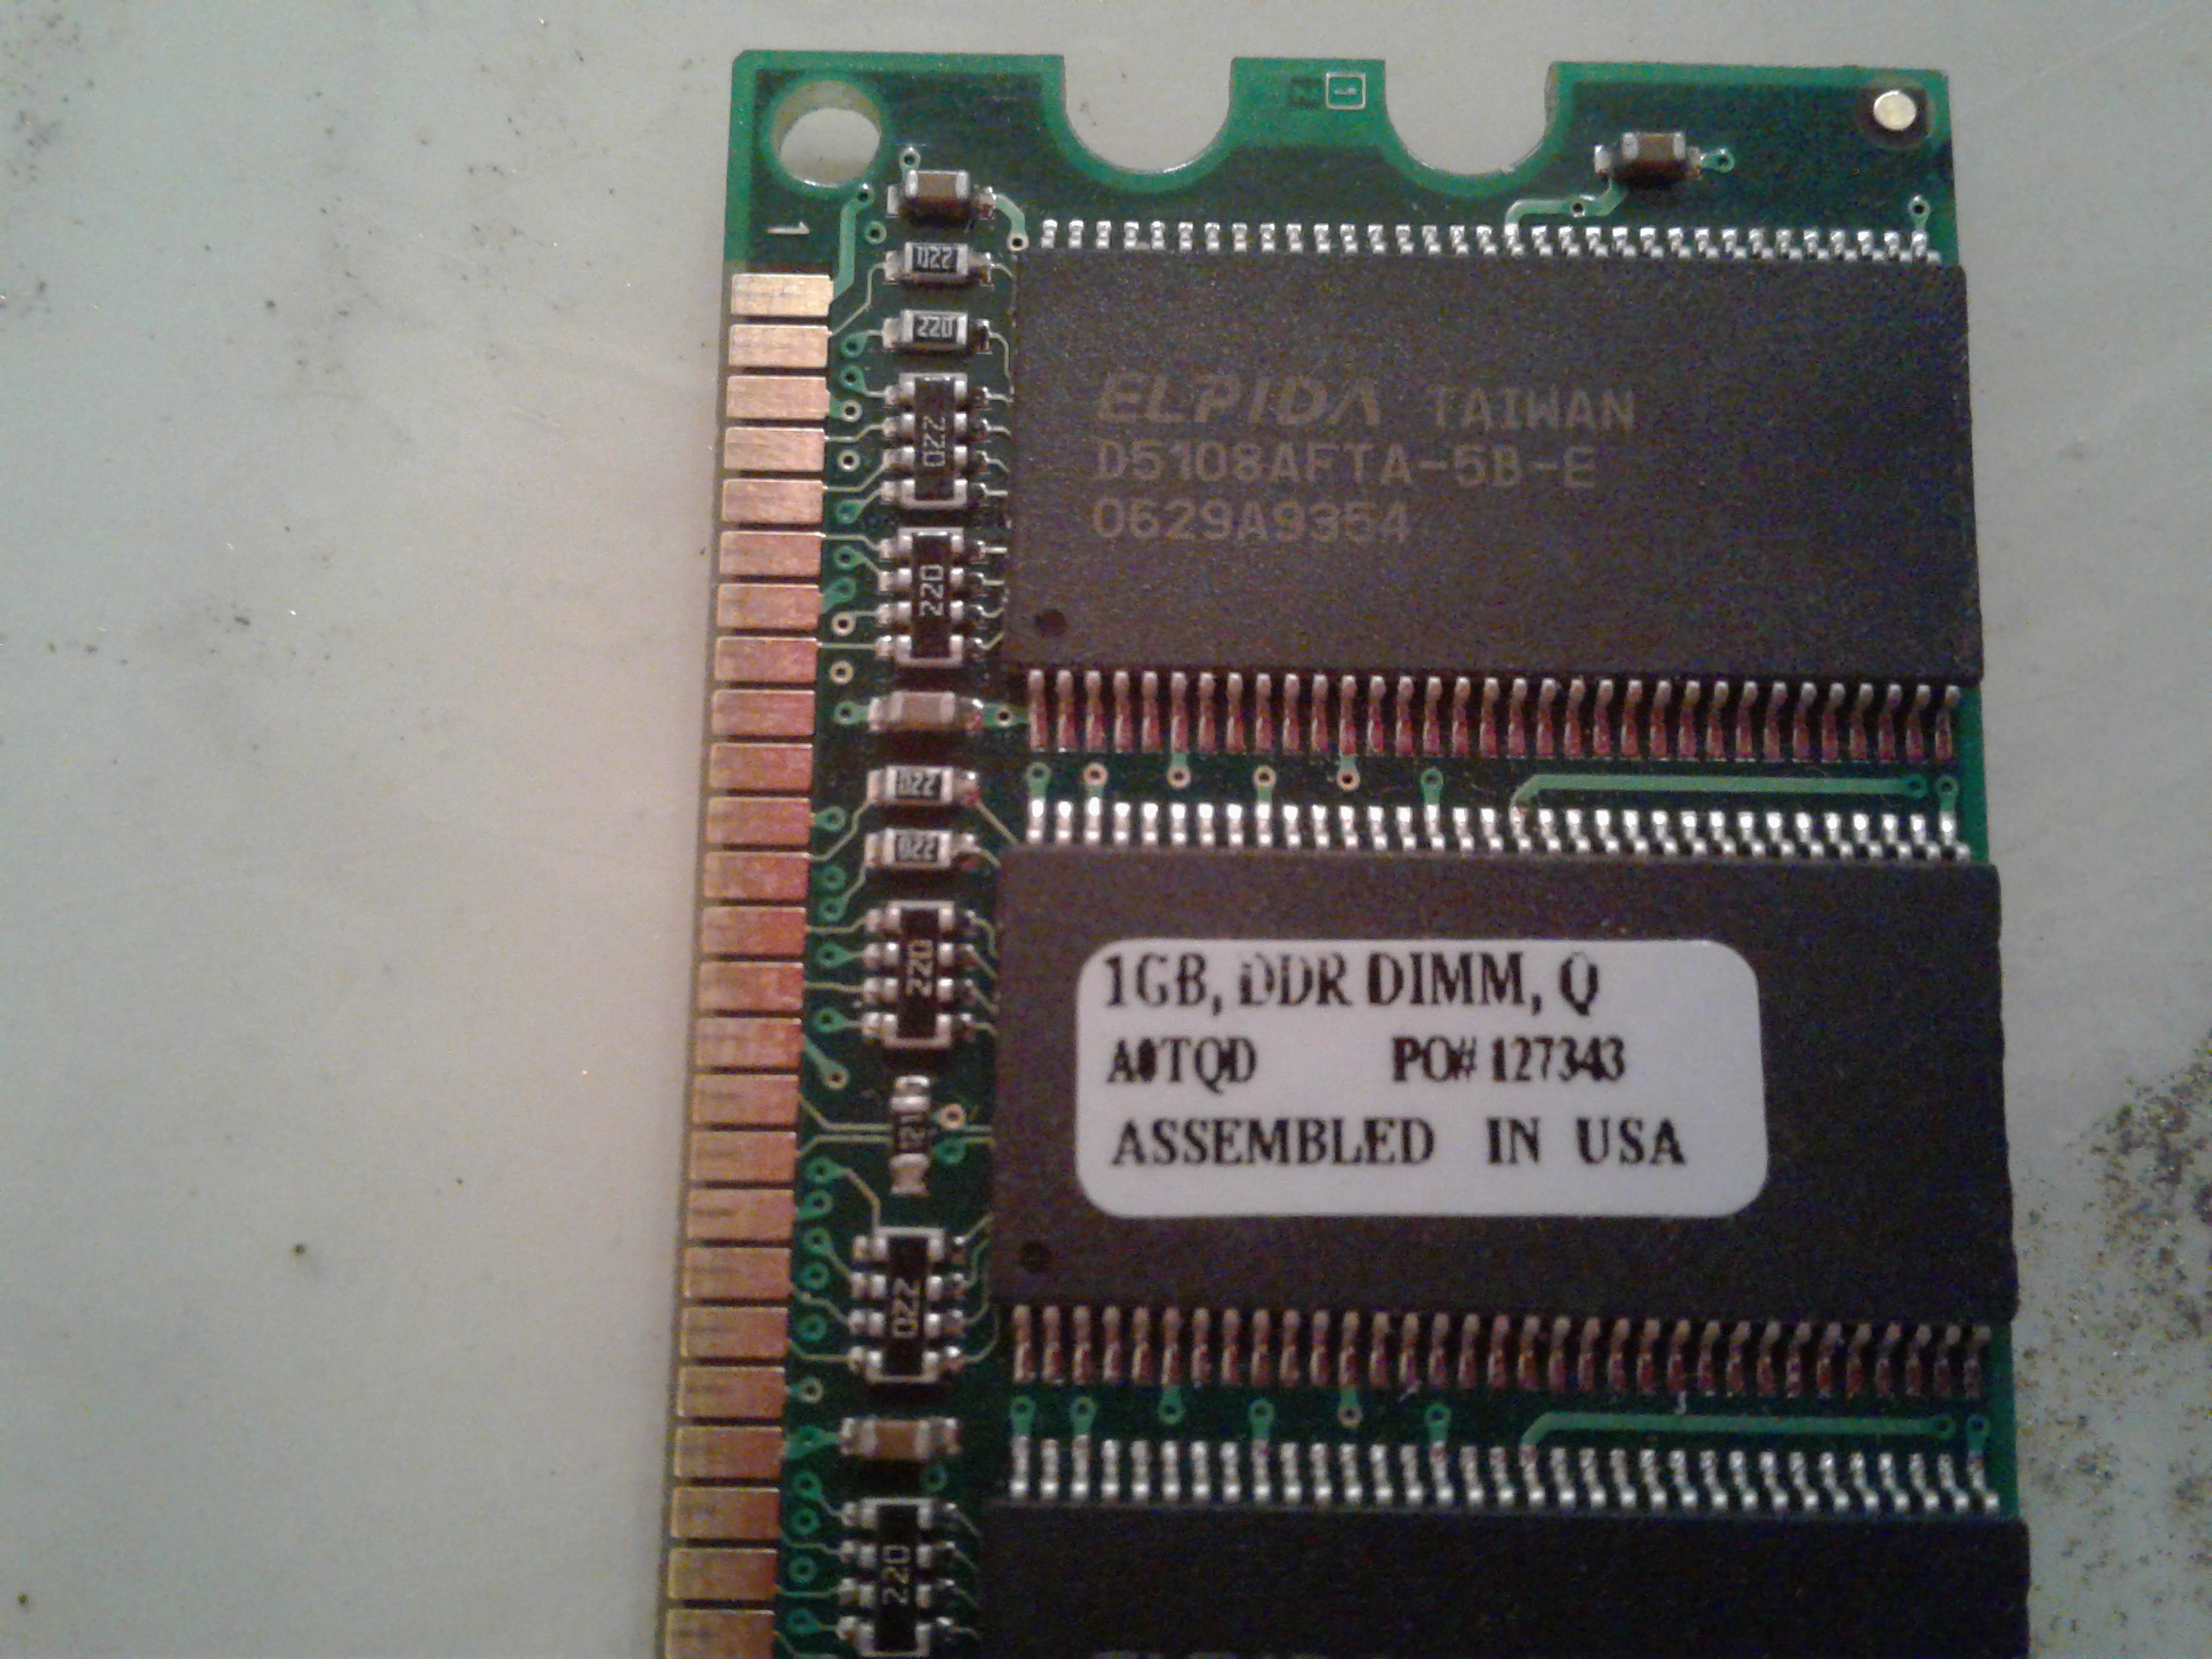 1GB RAM, DDR DIMM, ELPIDA, ASSEMBLED IN USA